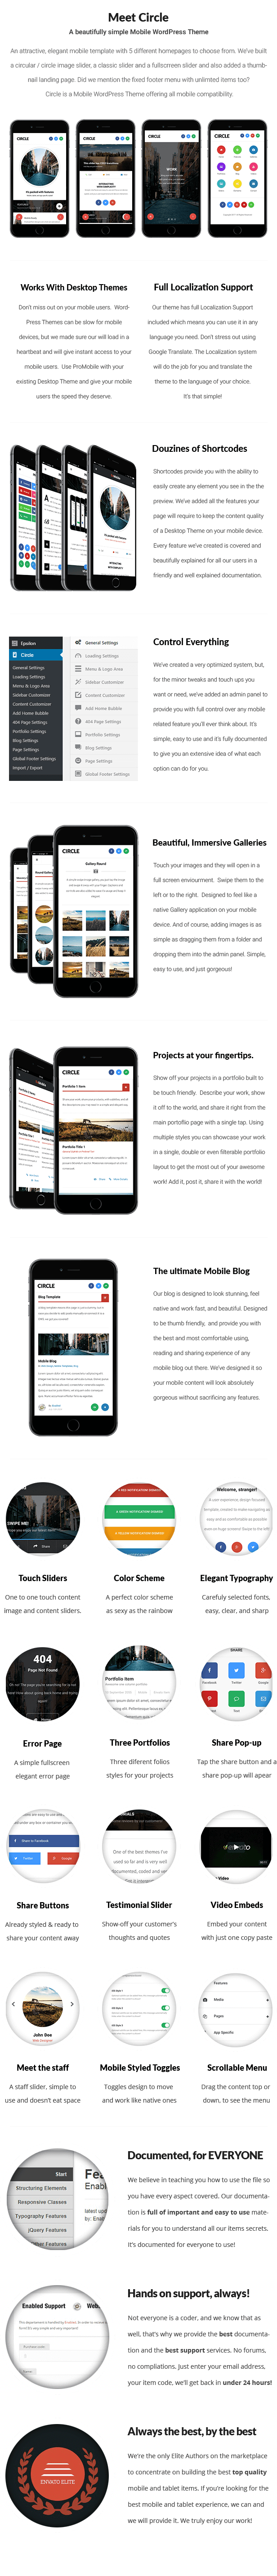 Circle Mobile | Mobile WordPress Theme - 9